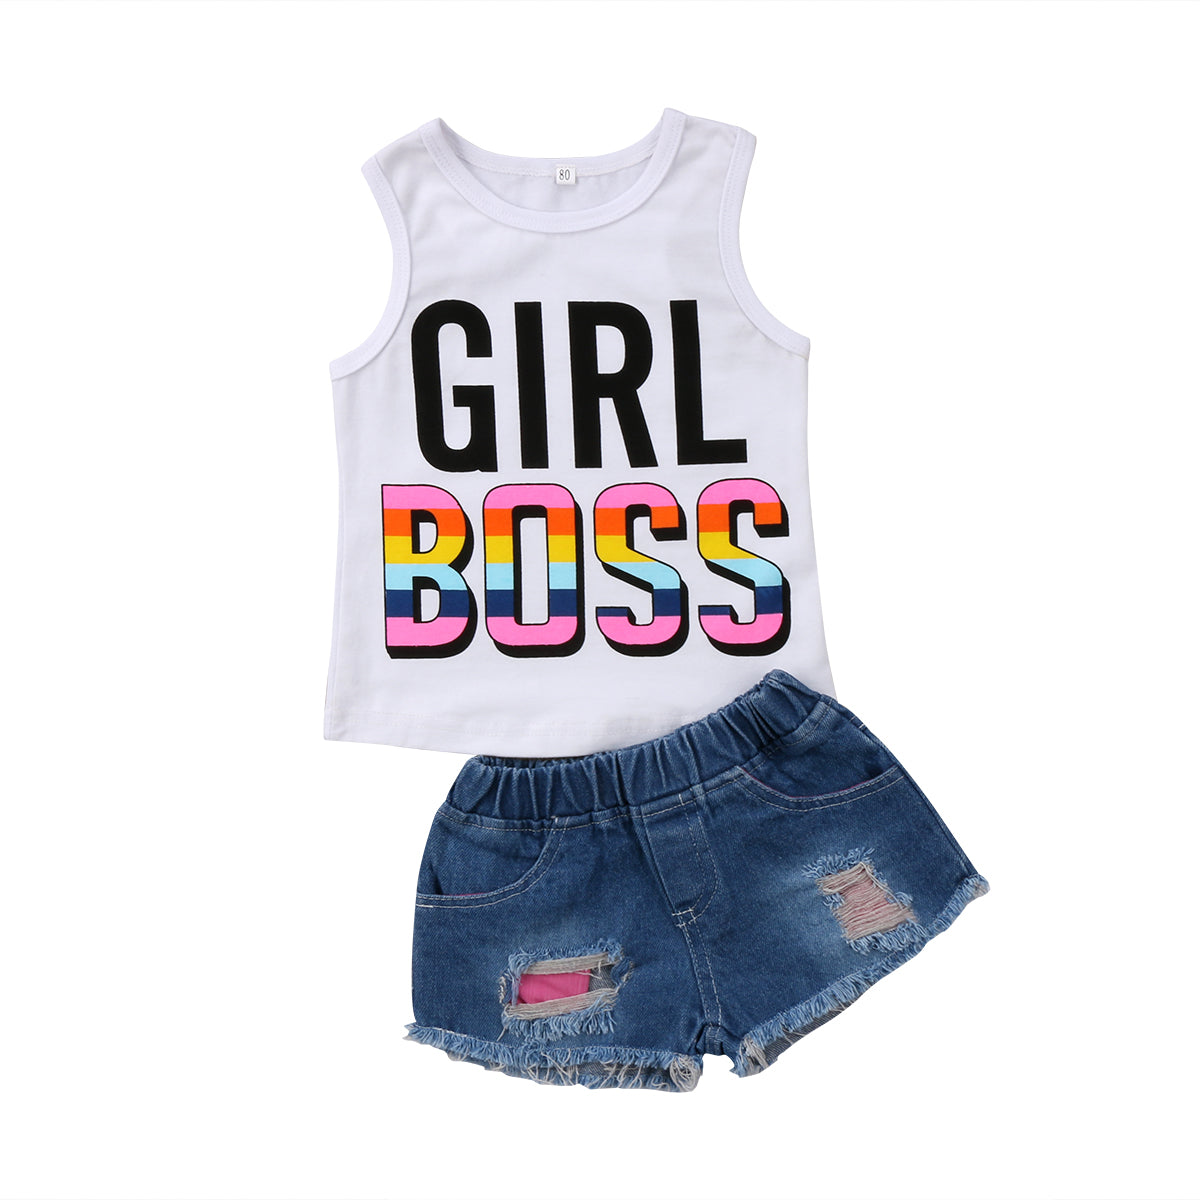 4e8bcfcd5 Girl Boss Outfit – The Tiny Hipster Co